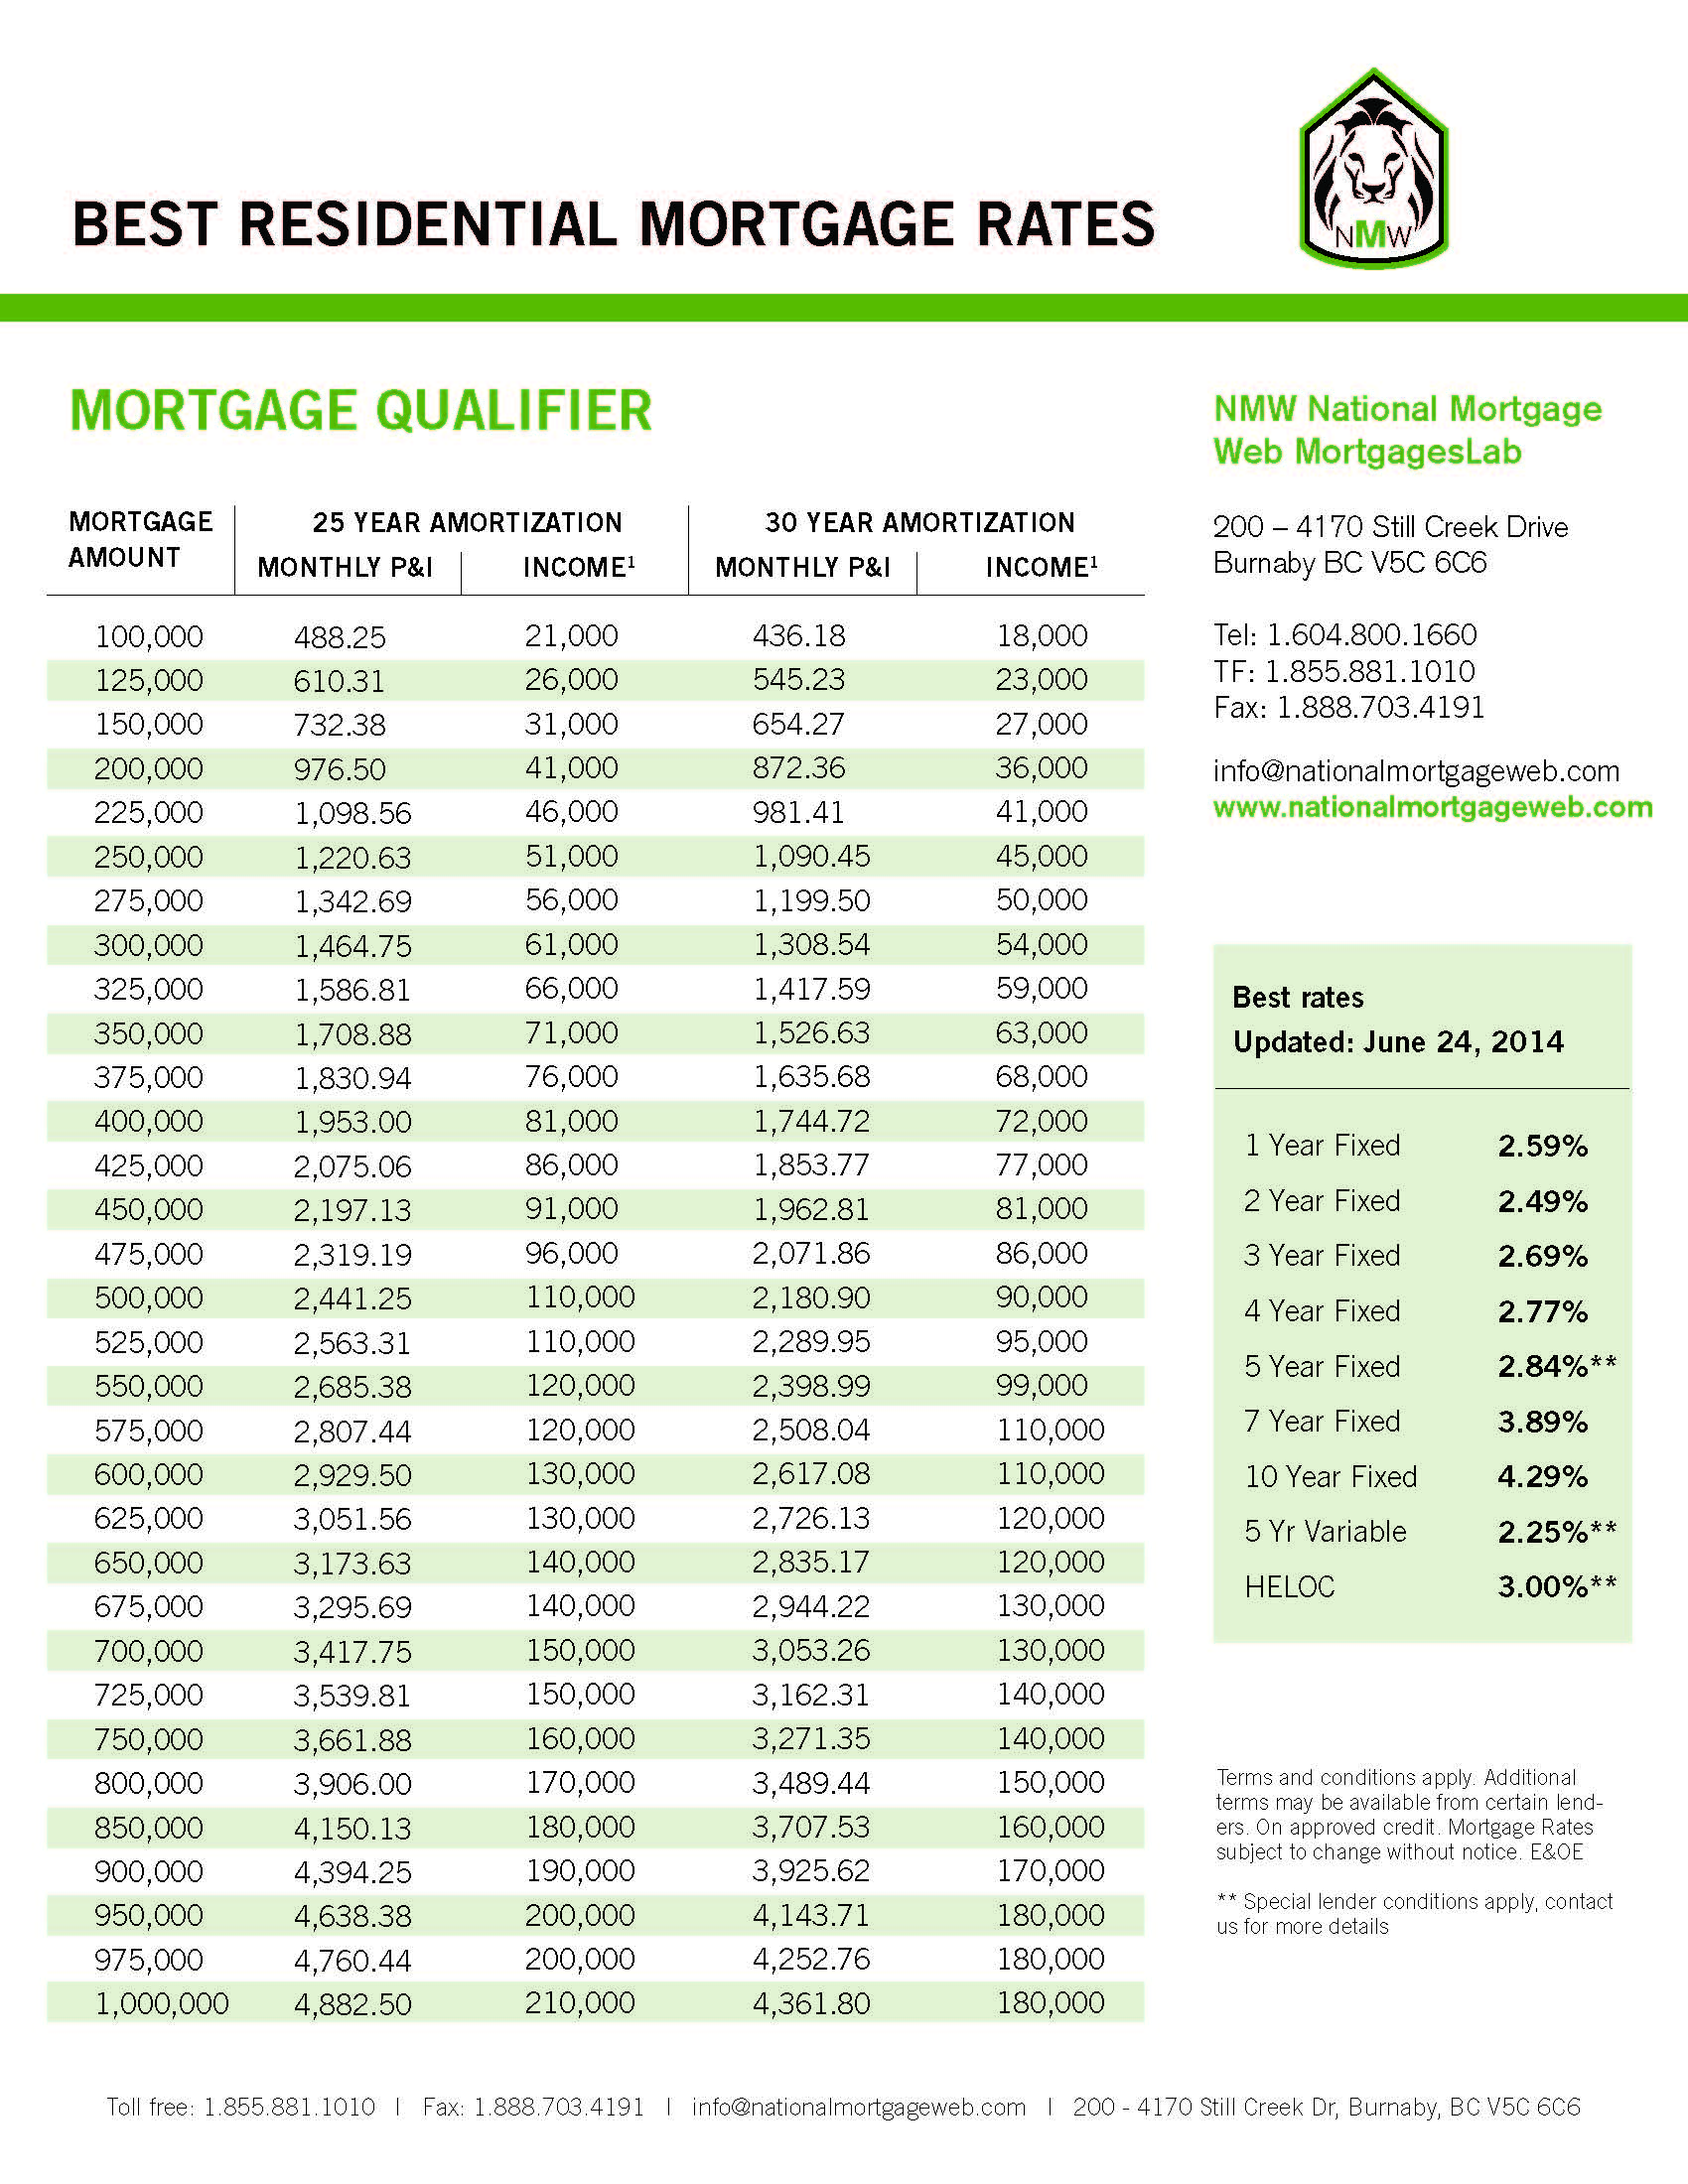 Mortgage Qualifier